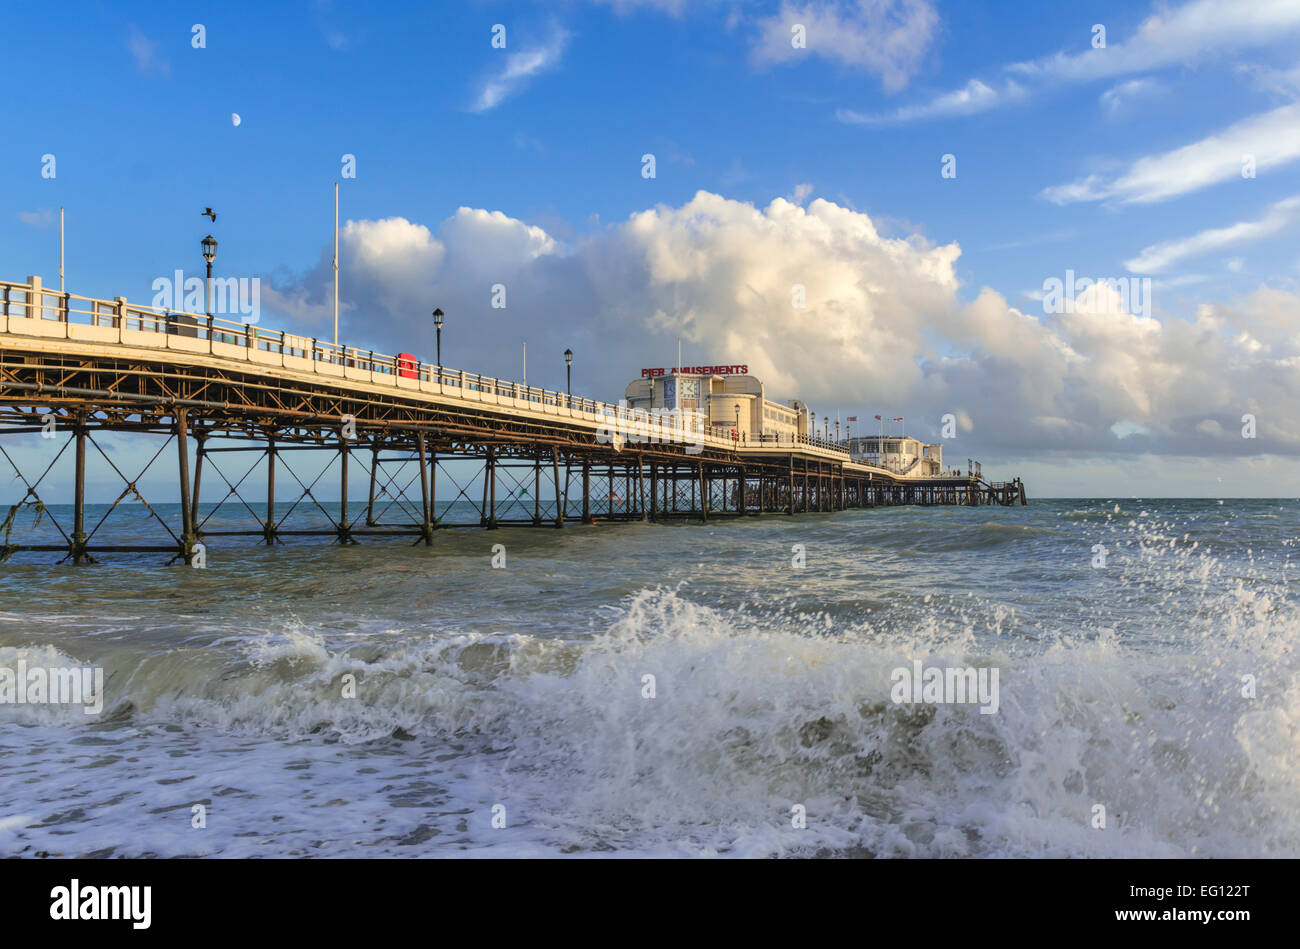 Worthing Pier in evening light in Worthing, West Sussex, England, UK. Stock Photo